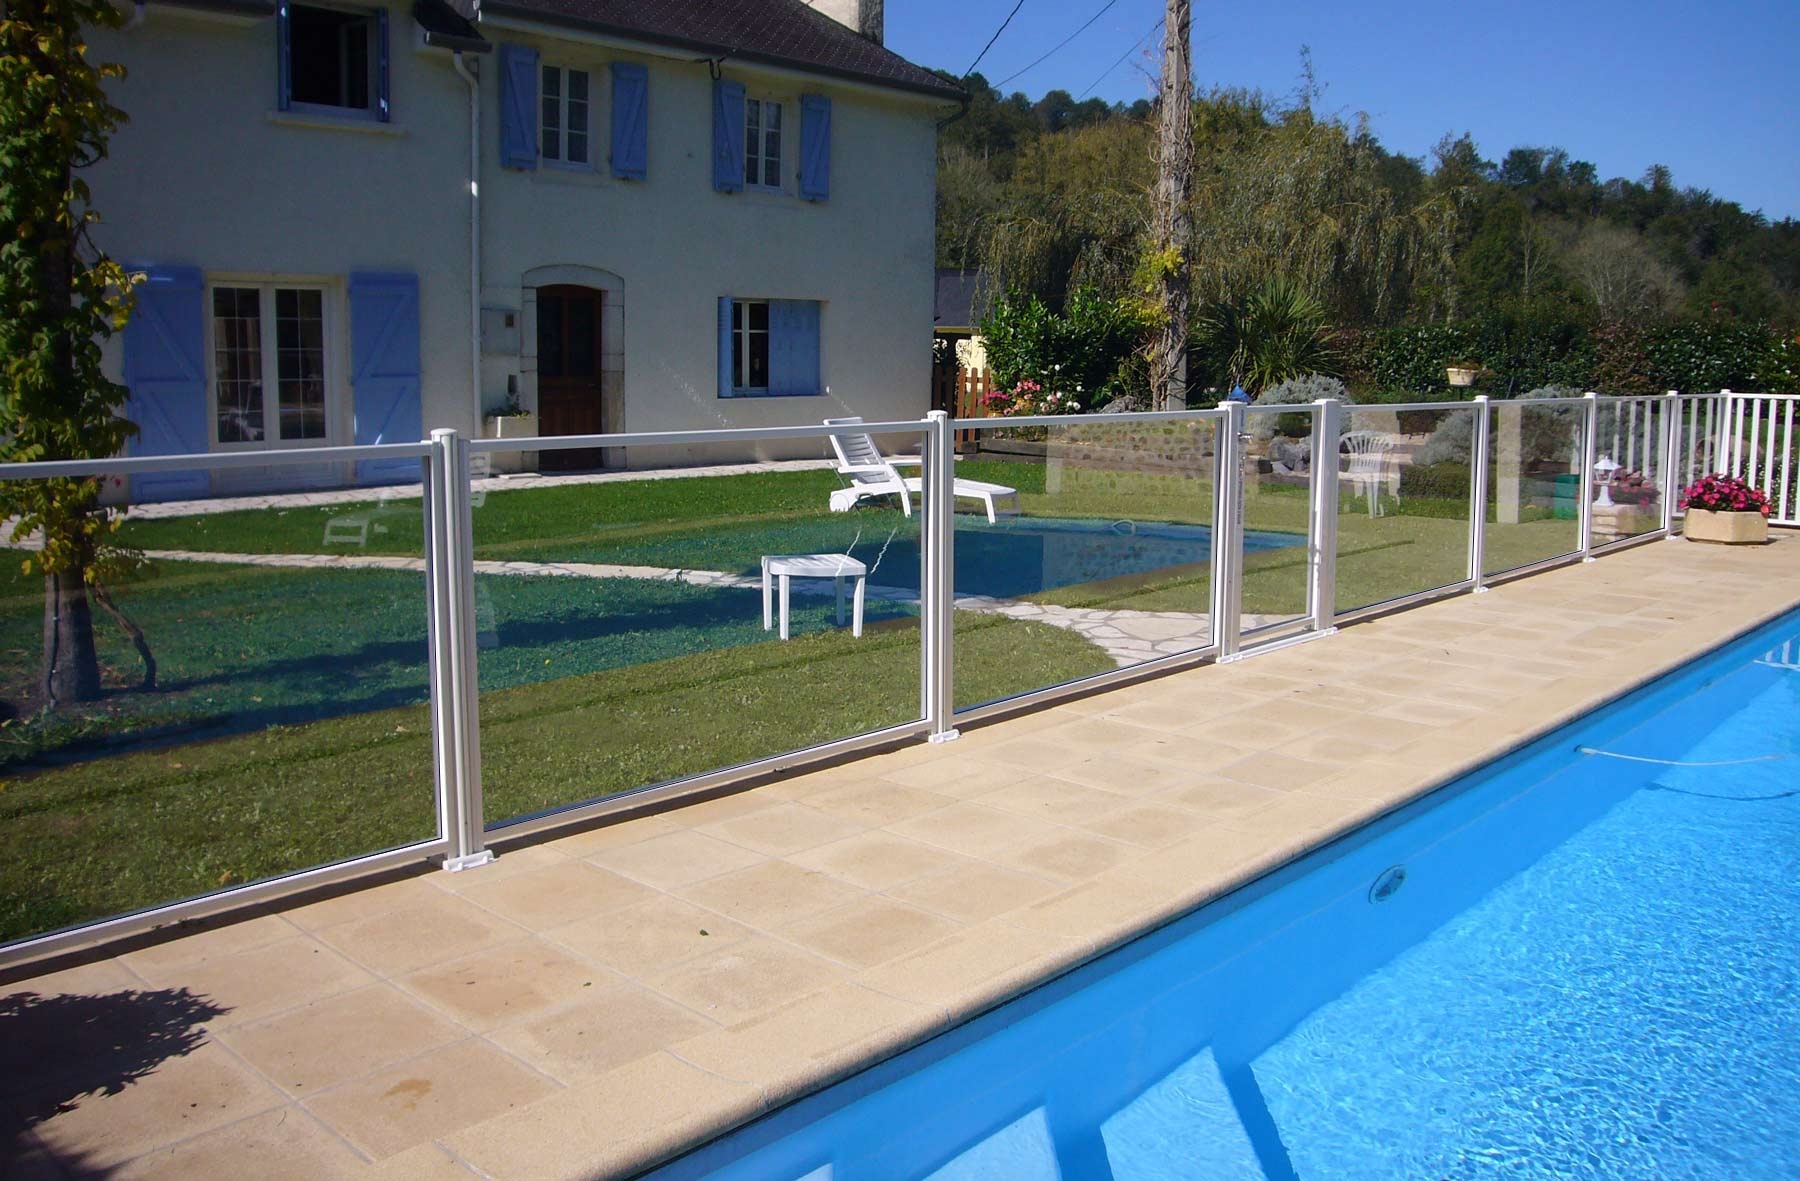 Les barri res en verre de protection d 39 atlantic barriere for Barriere piscine verre prix